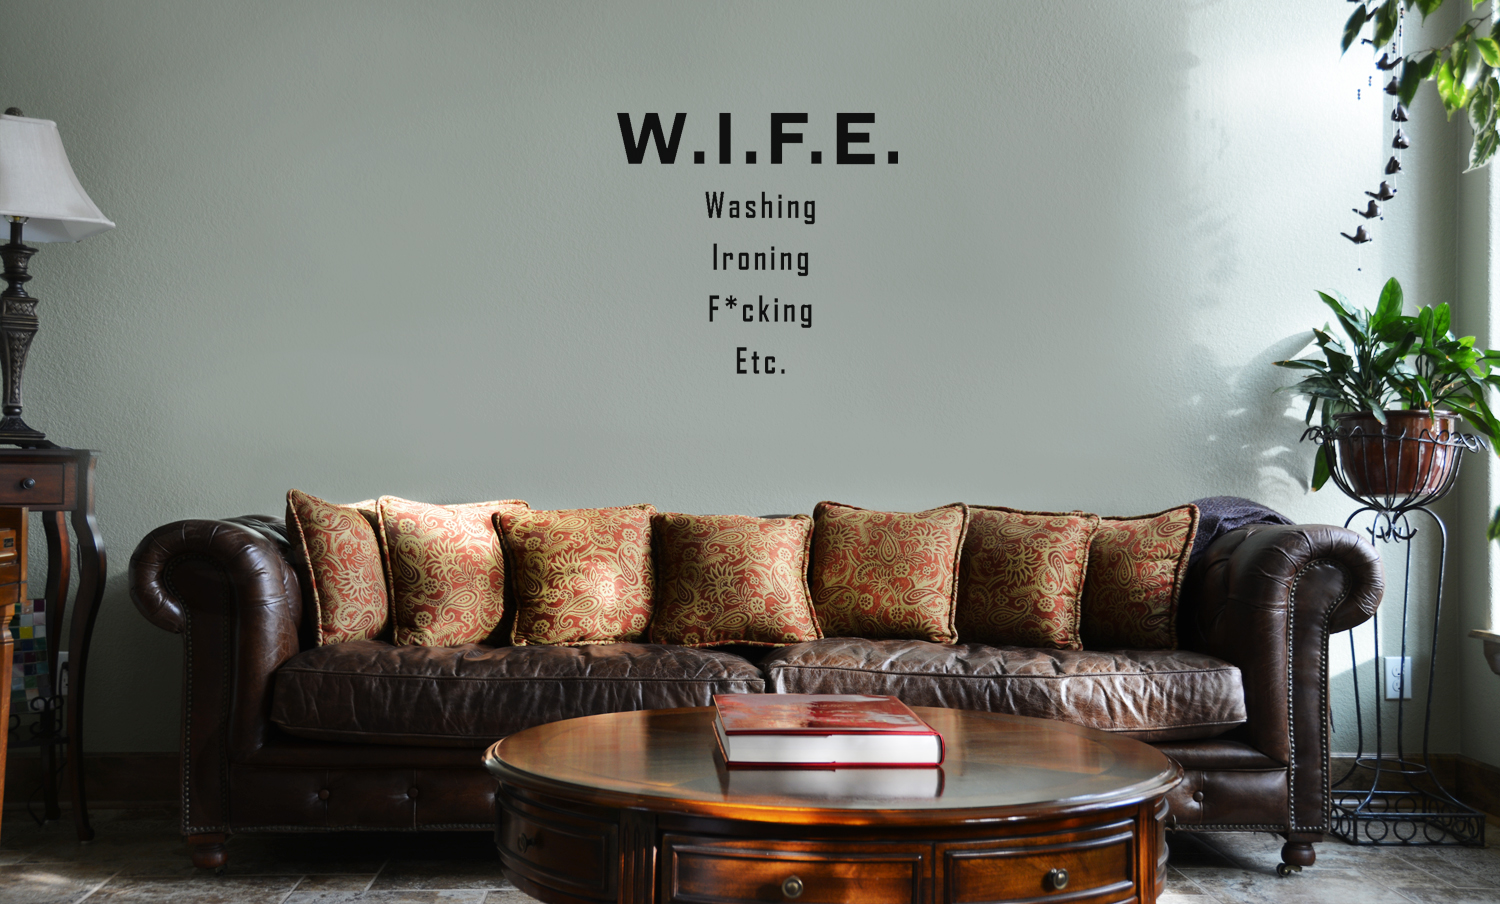 Guitar Wall Mural Wife Funny Washing Ironing F Cking Etc Husband Vinyl Wall